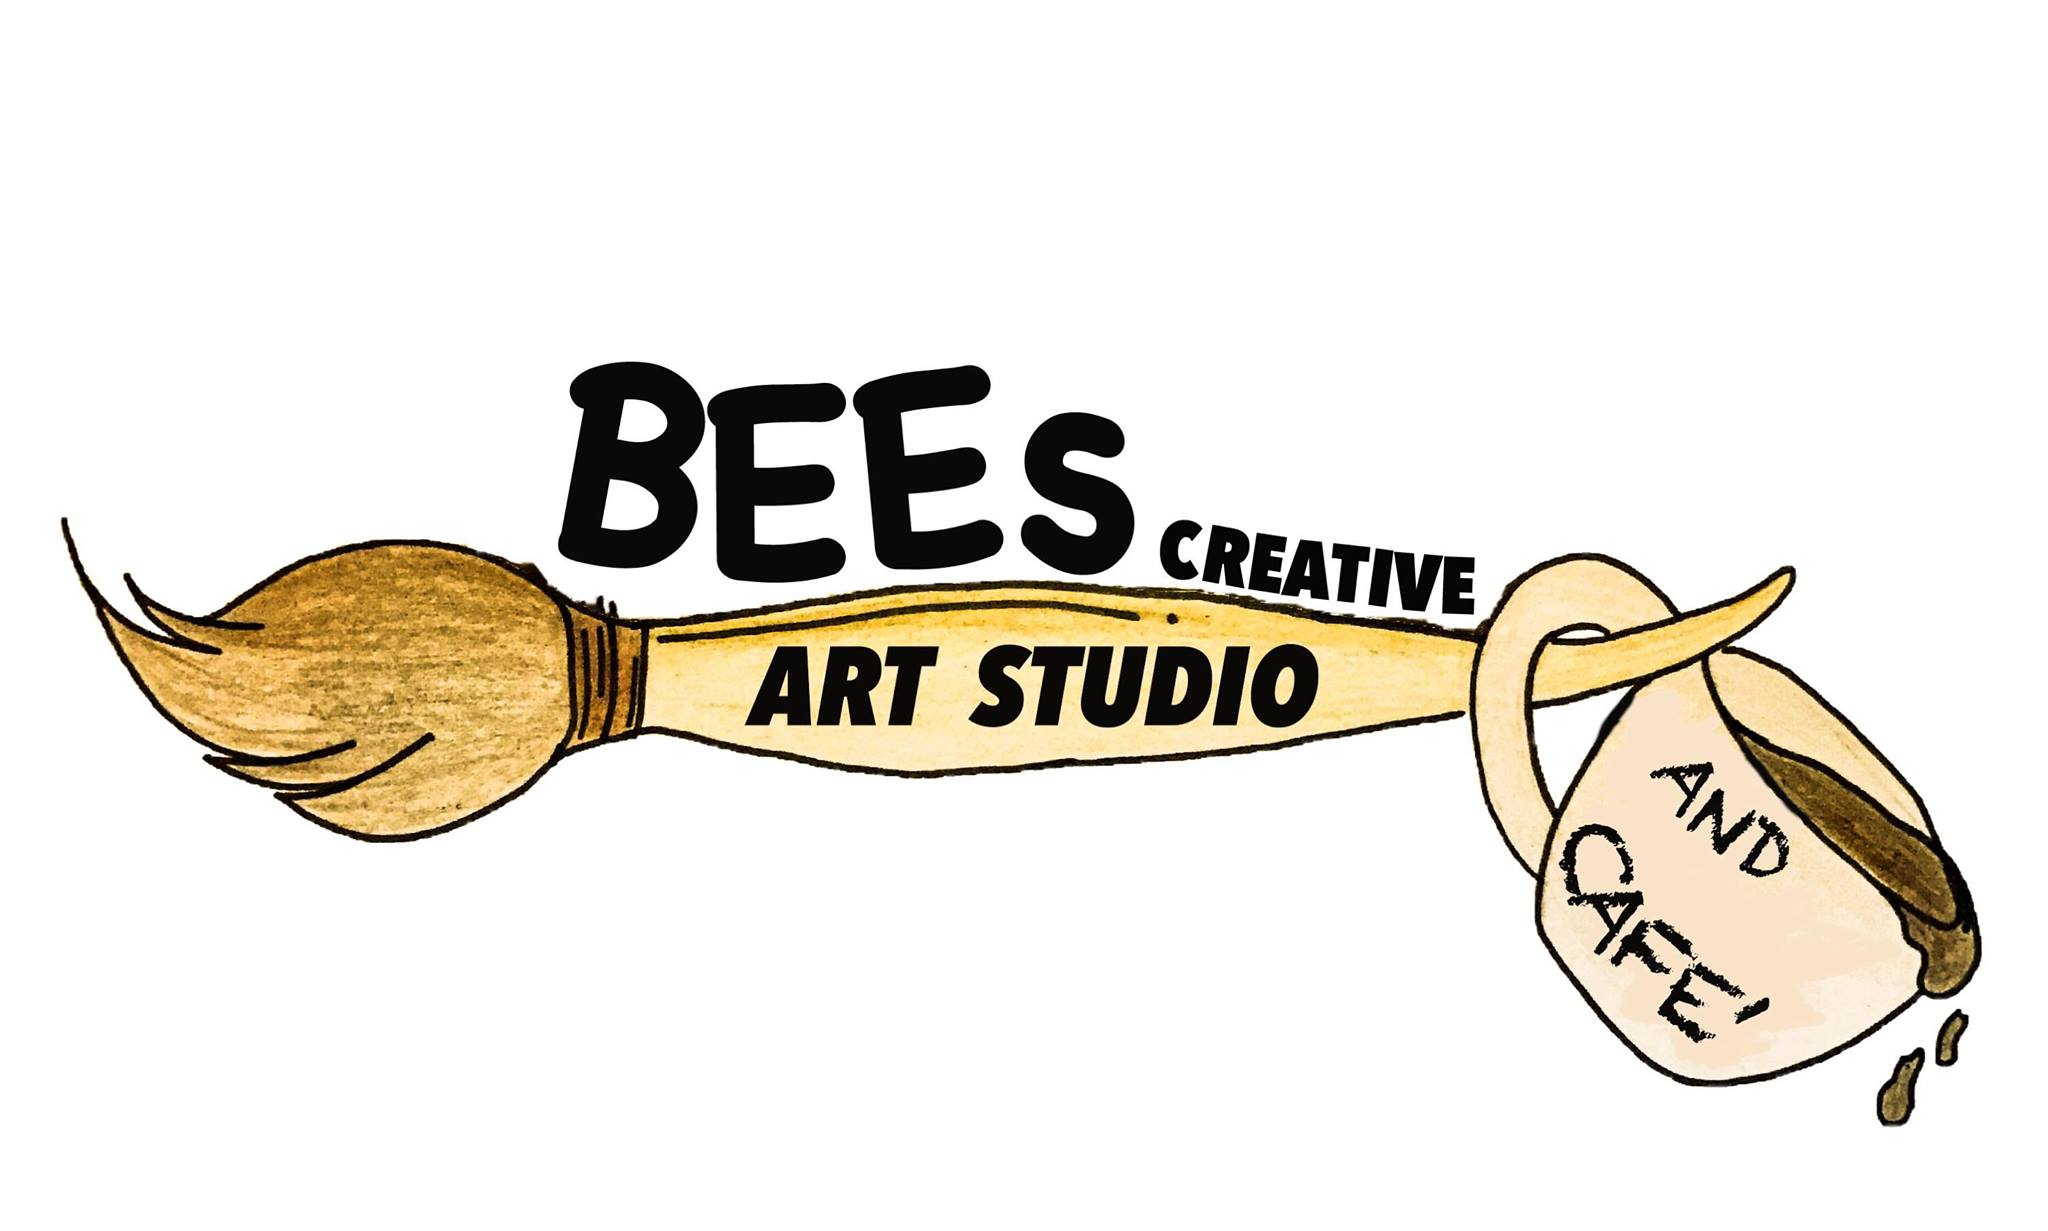 Bee's Creative Art Studio